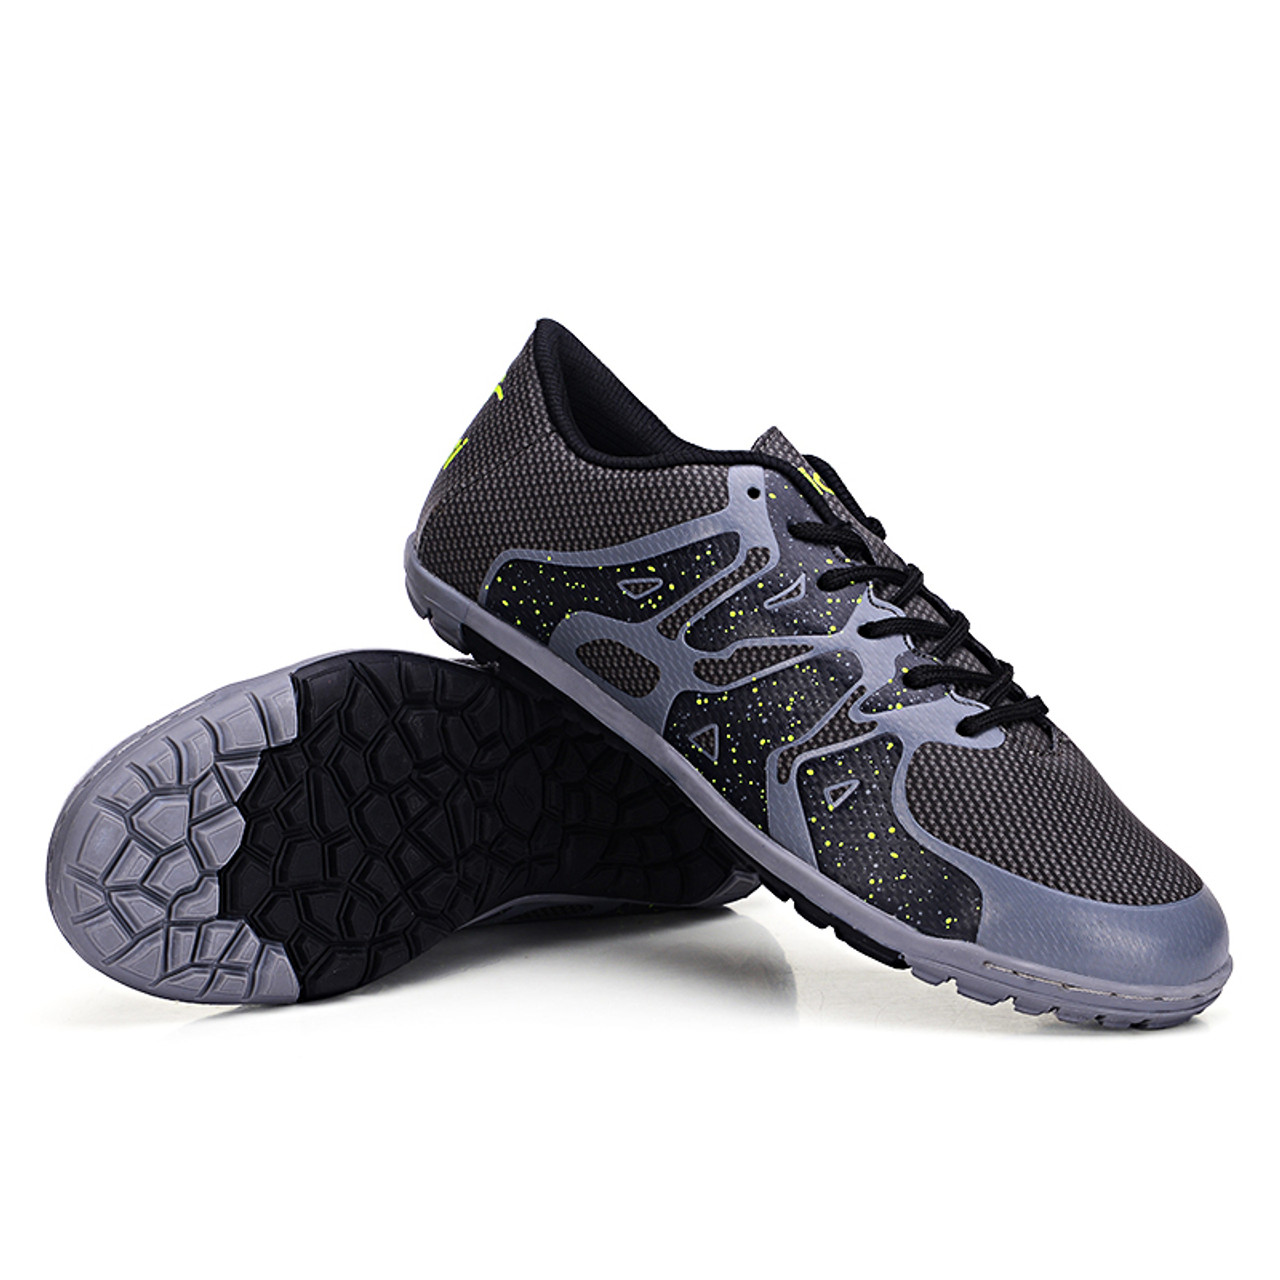 e1f22ed06 ... Kids indoor soccer shoes for men boot futsal shoes child soccer cleats  size 33-44 ...